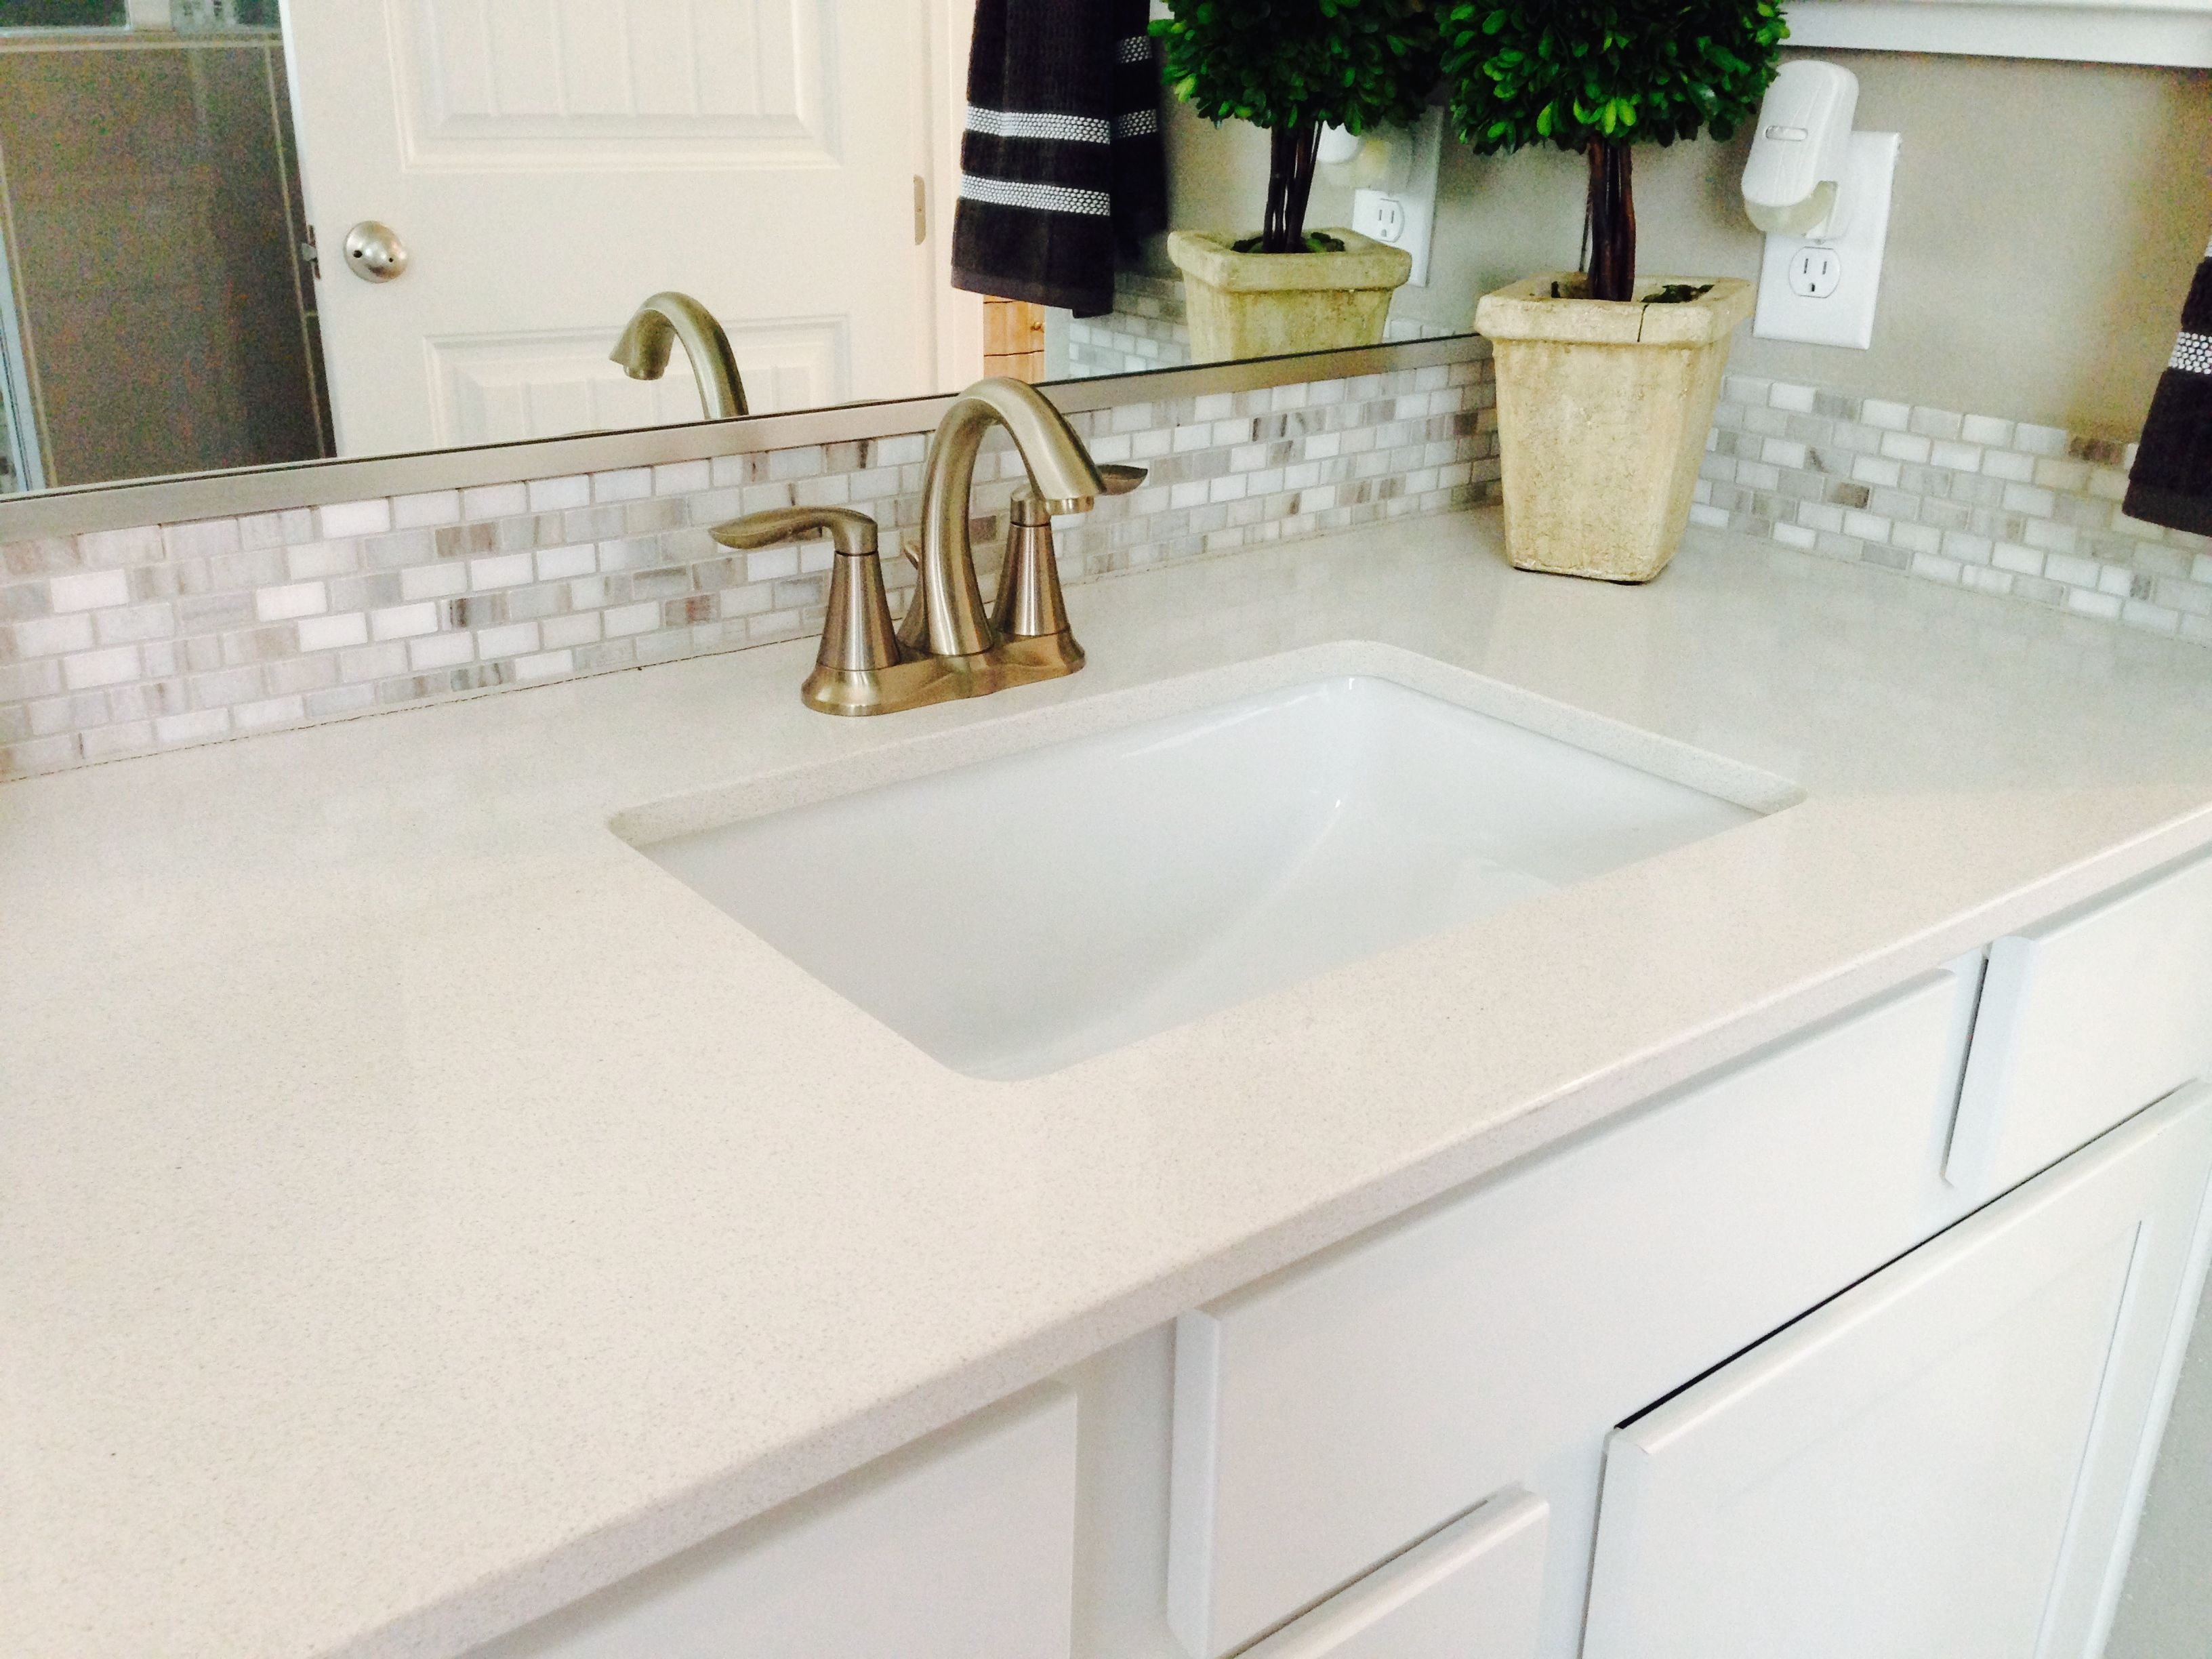 Master bath vanity silestone counter with decorative mosaic tile master bath vanity silestone counter with decorative mosaic tile backsplash and undermount white trench bowl sink dailygadgetfo Images